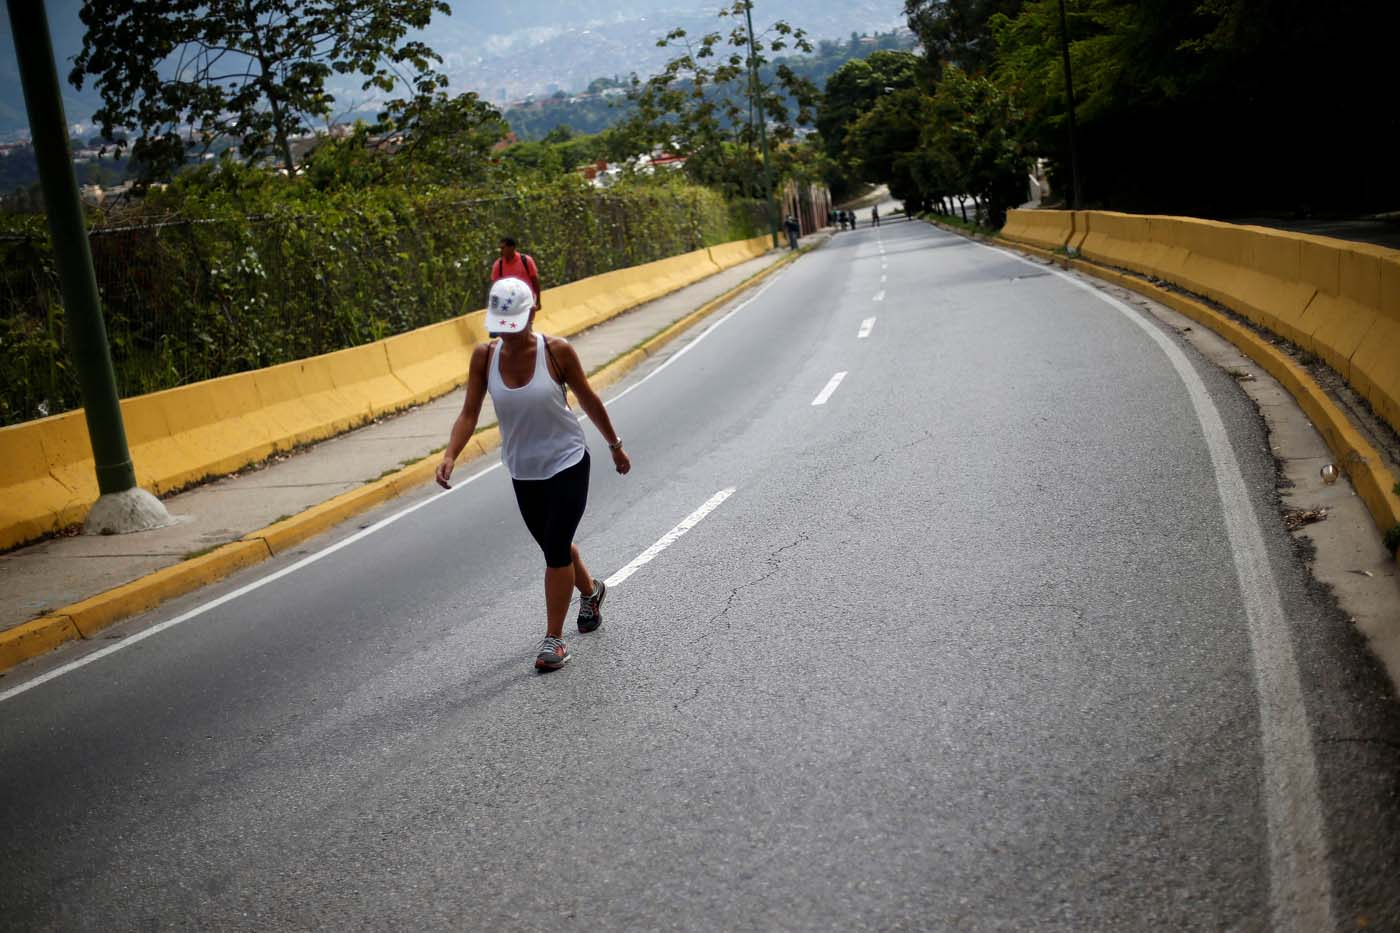 A woman walks along a street during a strike called to protest against Venezuelan President Nicolas Maduro's government in Caracas, Venezuela July 26, 2017. REUTERS/Andres Martinez Casares